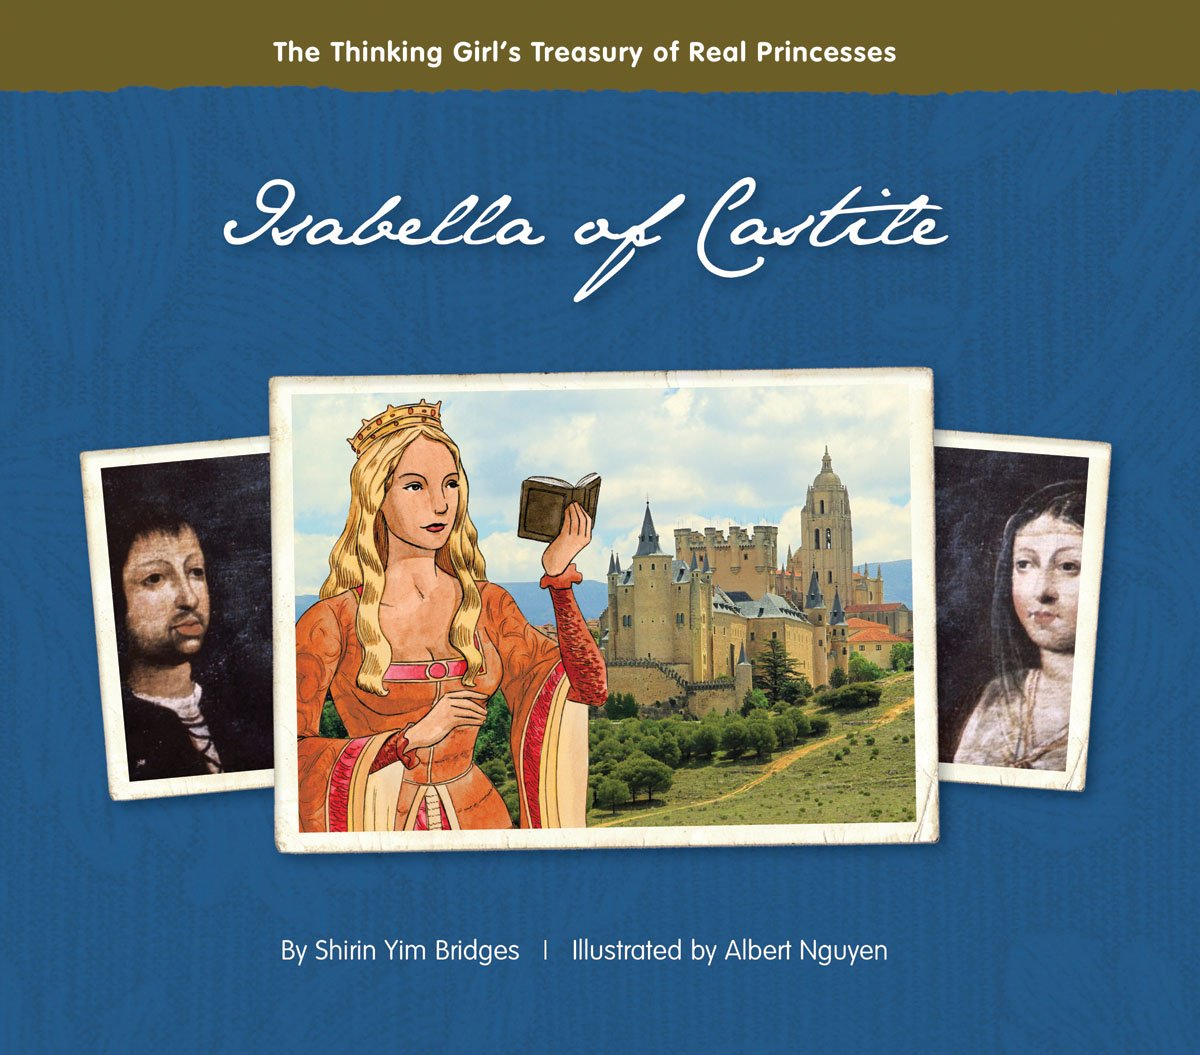 Isabella of Castile (The Thinking Girl's Treasury of Real Princesses)